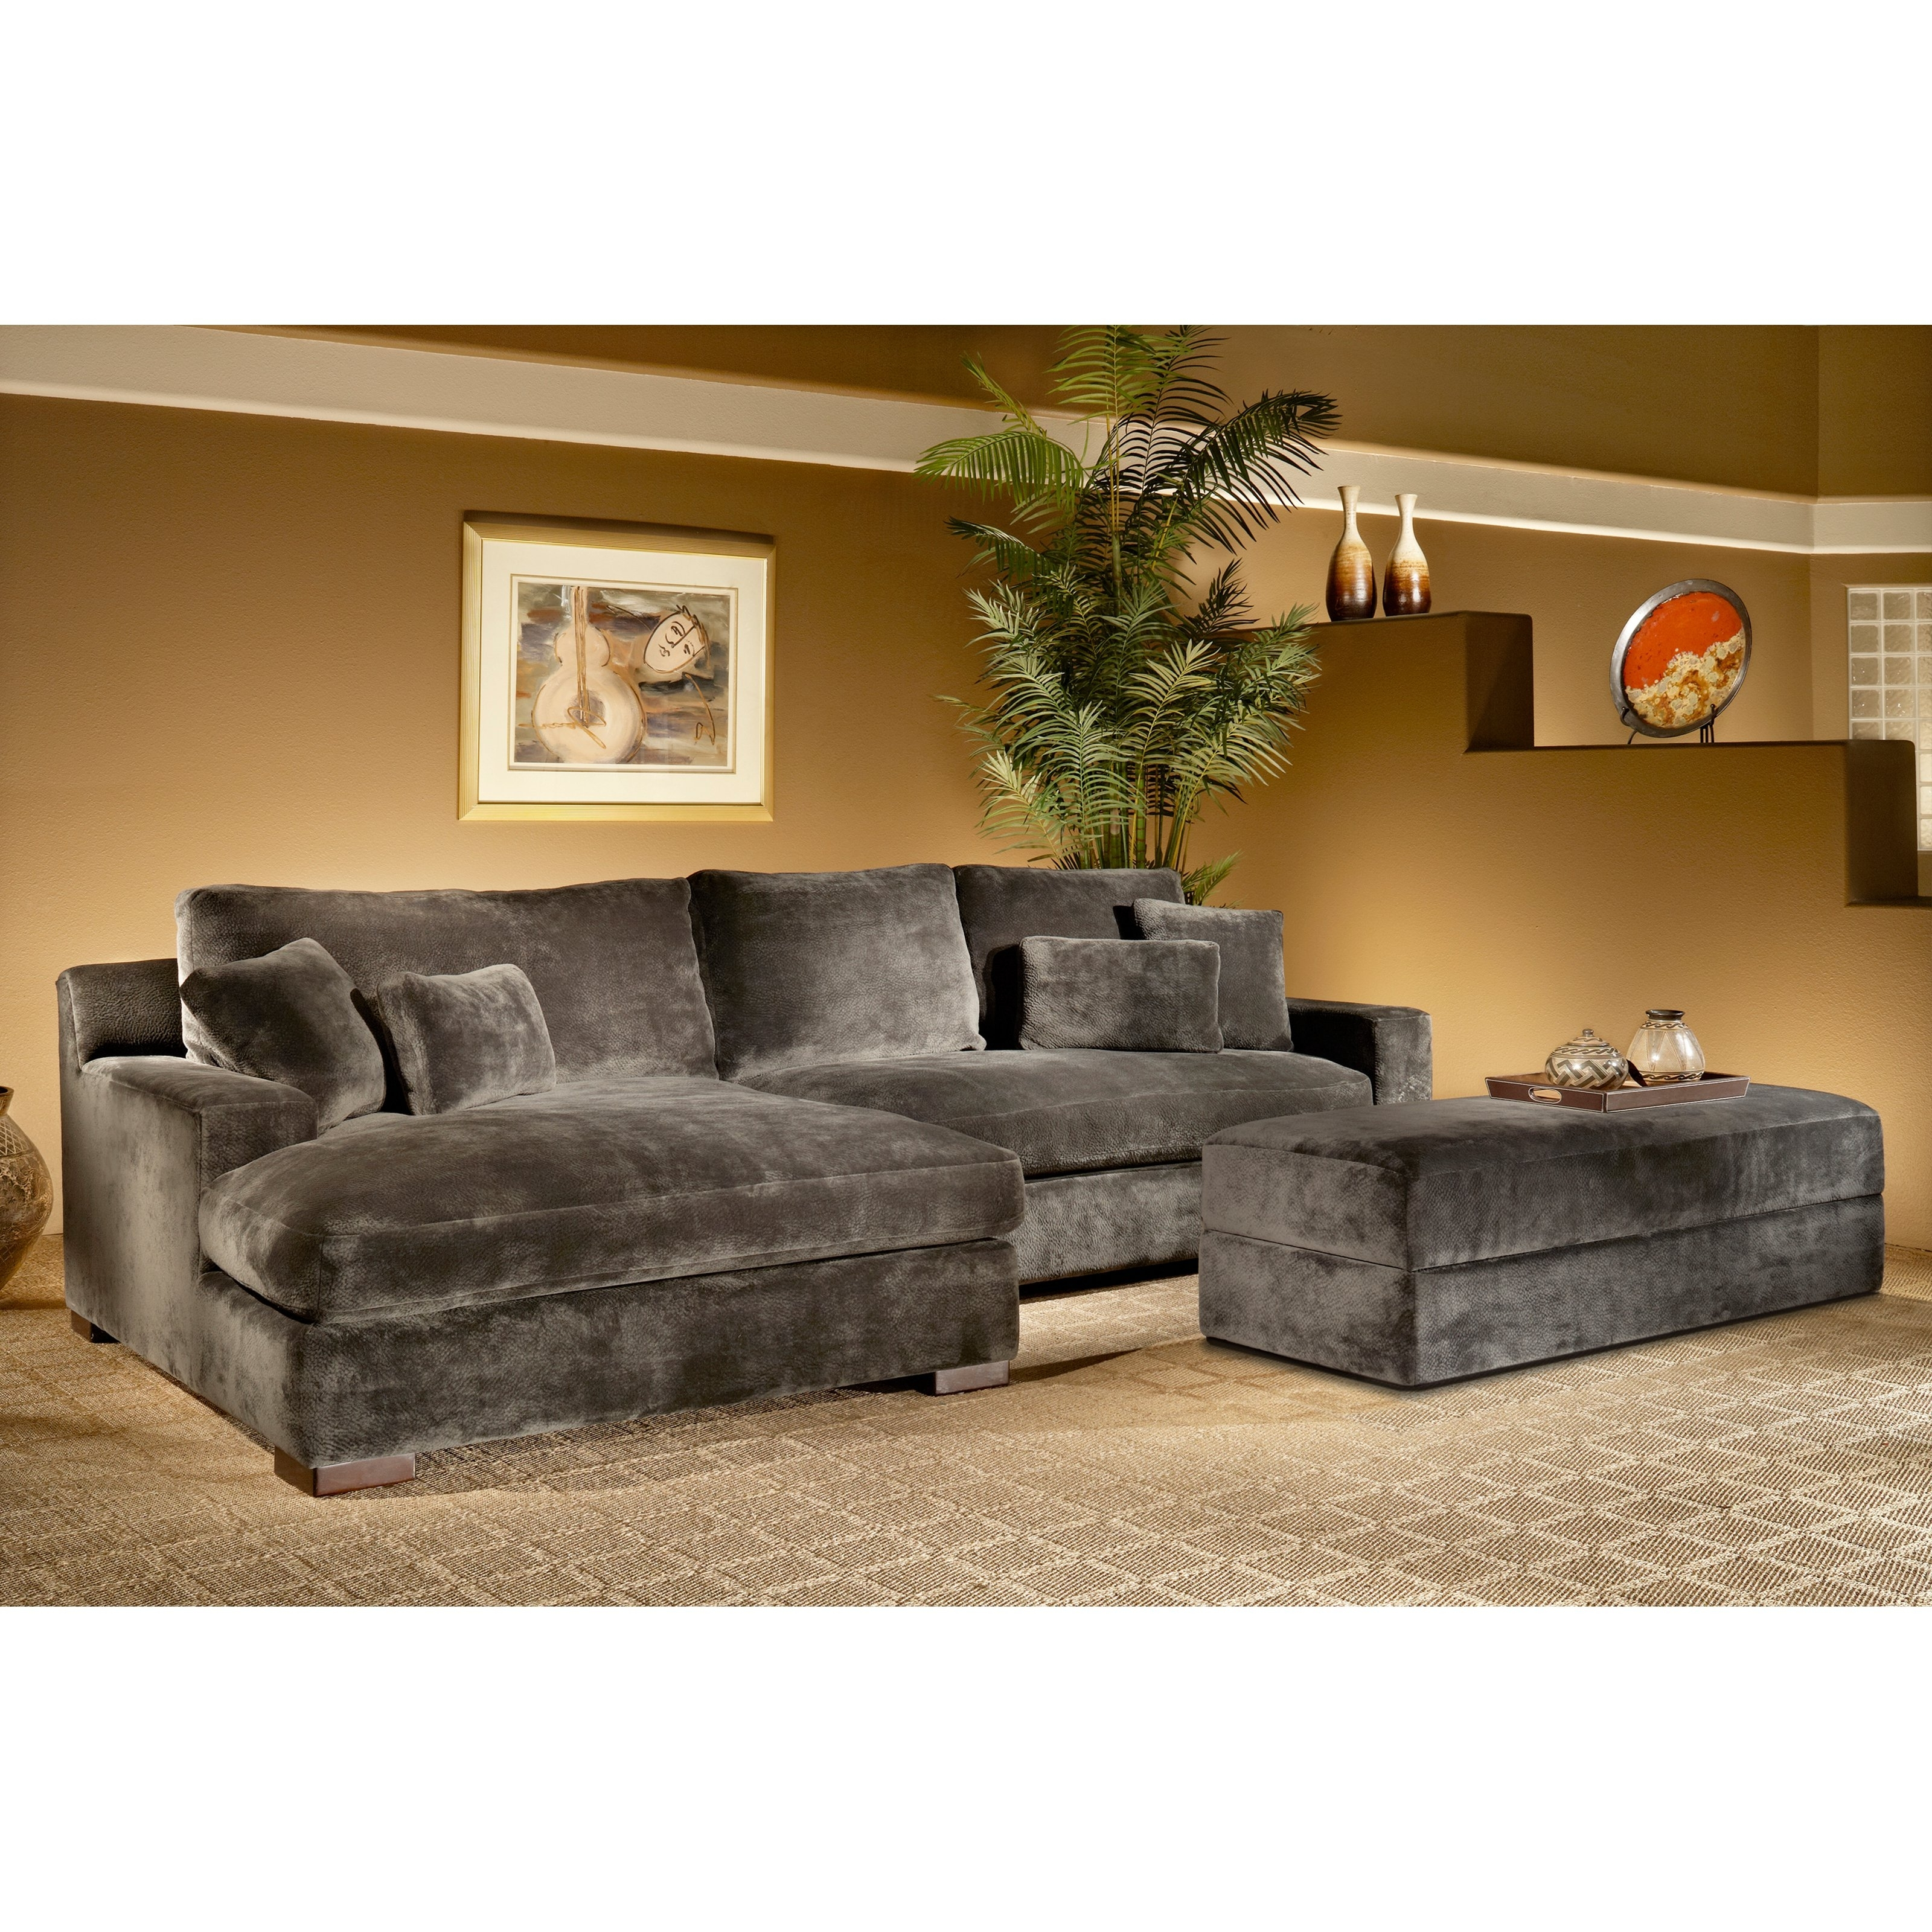 2 Piece Sectional Sofa | 2 Piece Sectional Sofa Canada | 2 Piece Throughout Elm Grande Ii 2 Piece Sectionals (View 24 of 25)